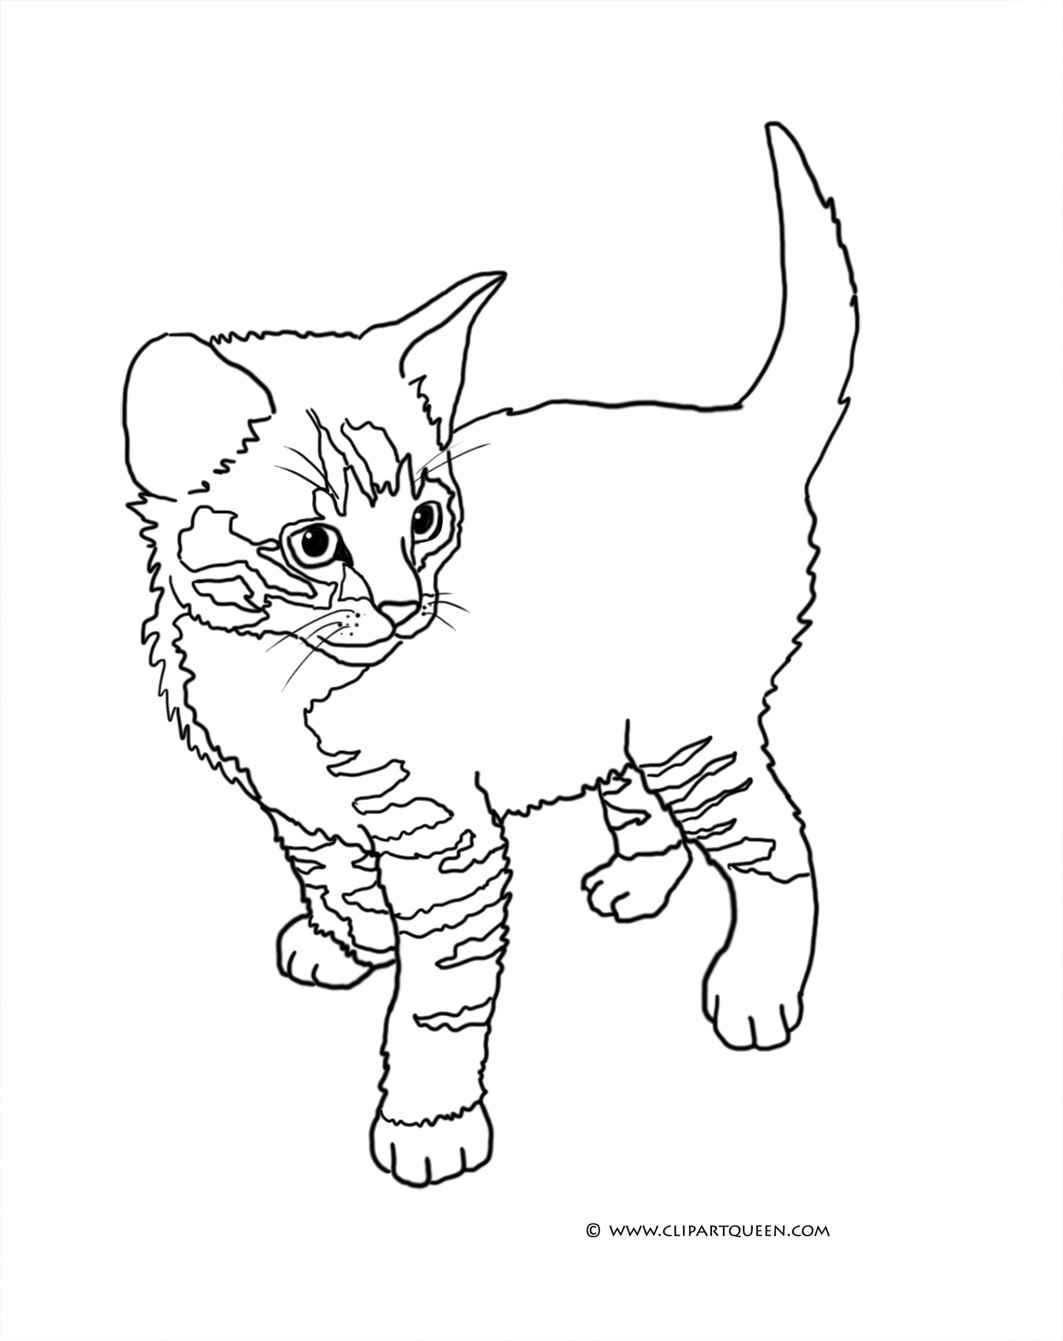 colouring pictures cats kittens kids coloring pages cat coloring pages colouring pictures cats kittens